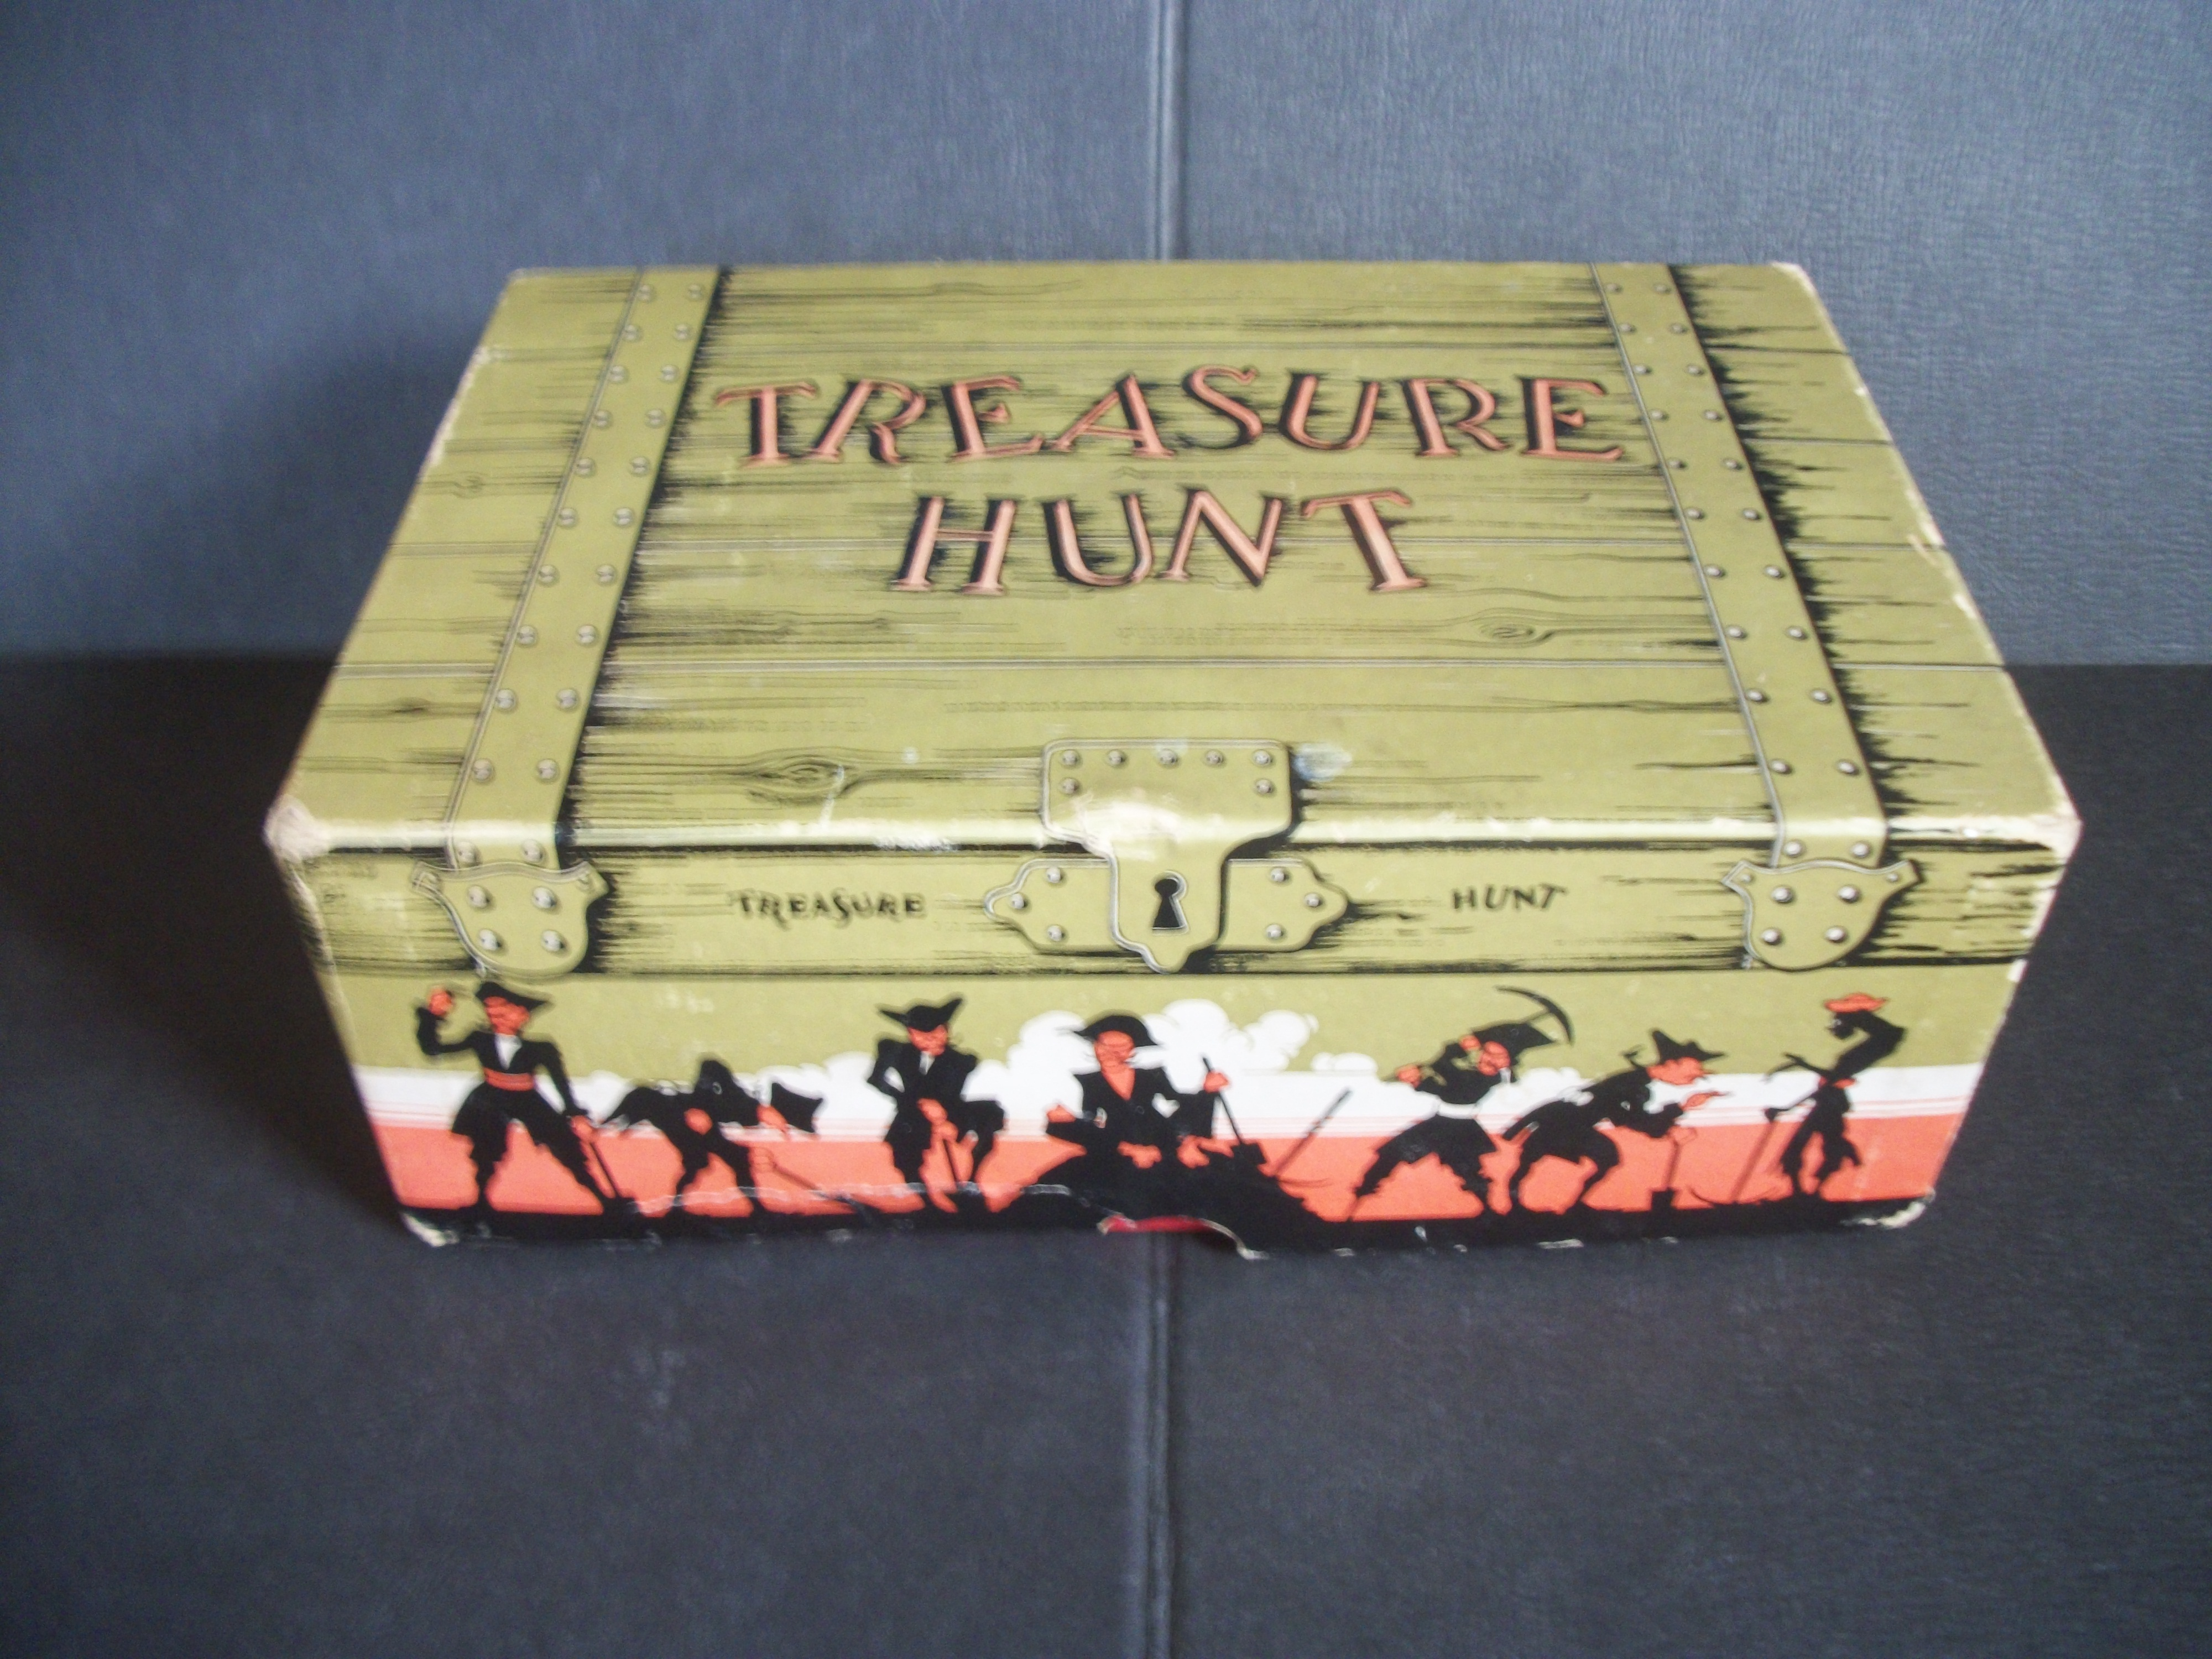 1940 Treasure Hunt Game